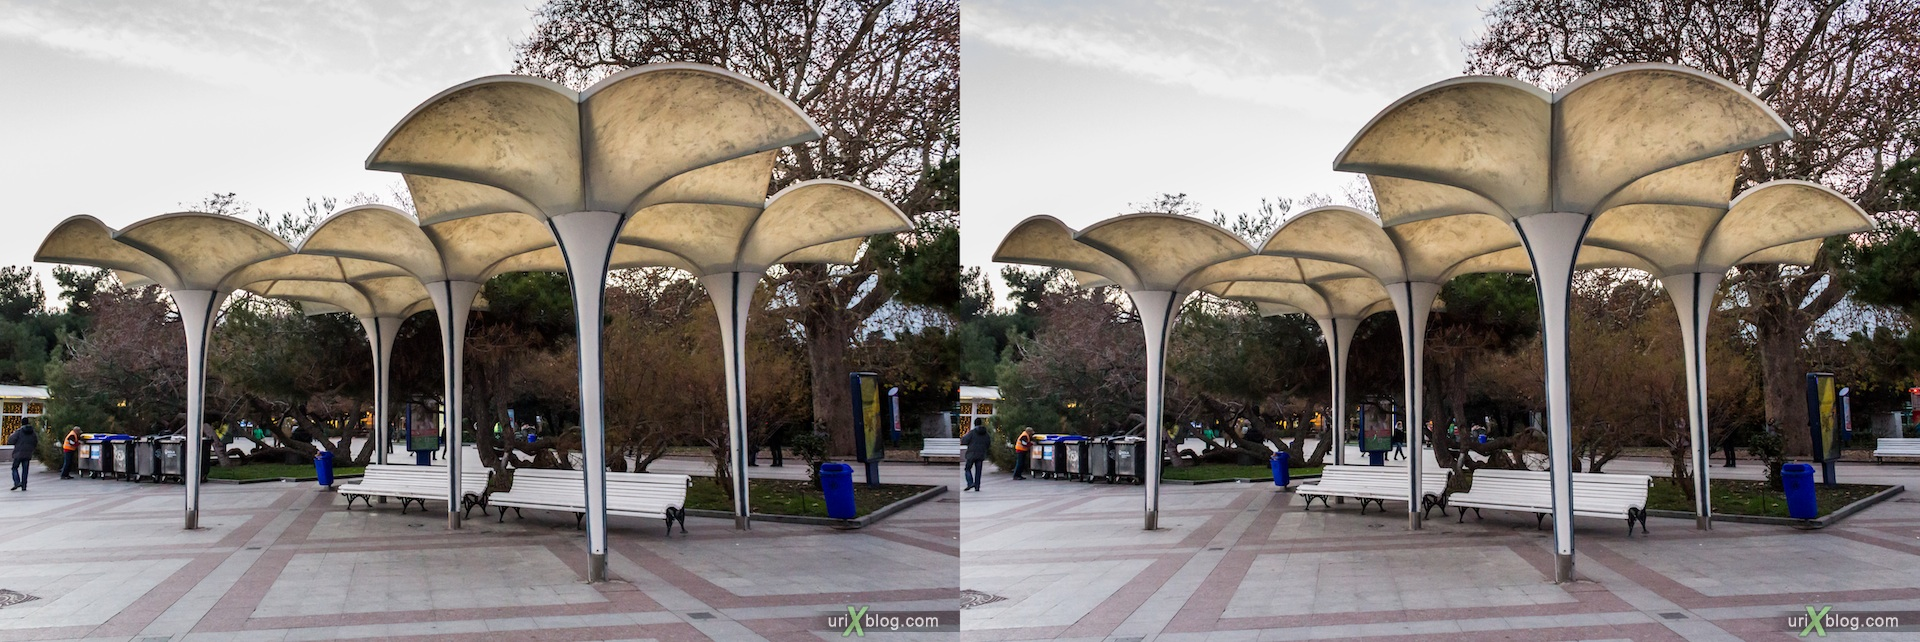 2012, bench, Imeni Lenina embankment, Yalta, evening, coast city, Crimea, Ukraine, 3D, stereo pair, cross-eyed, crossview, cross view stereo pair, stereoscopic